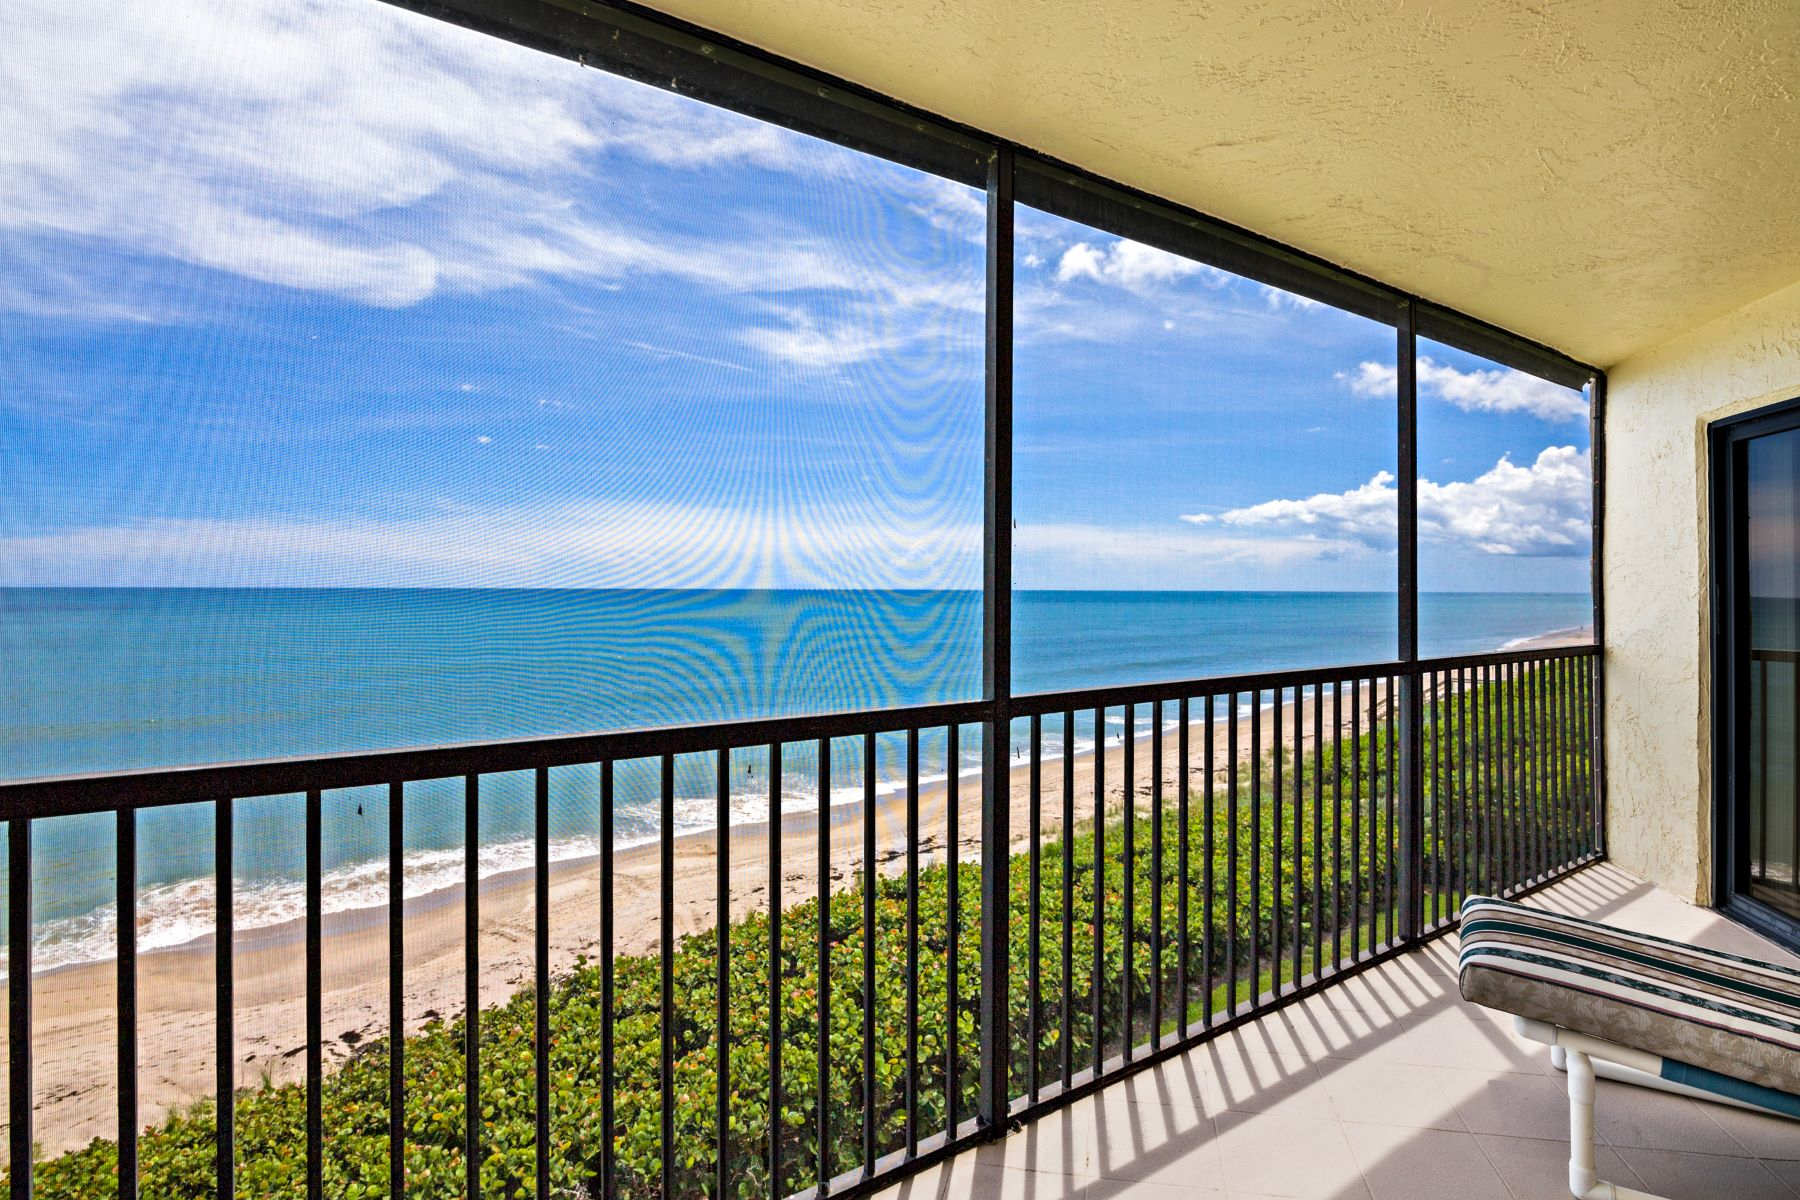 Condominiums 용 임대 에 Immaculate Oceanfront Condo 6309 S Highway A1A 342 Melbourne Beach, 플로리다 32951 미국